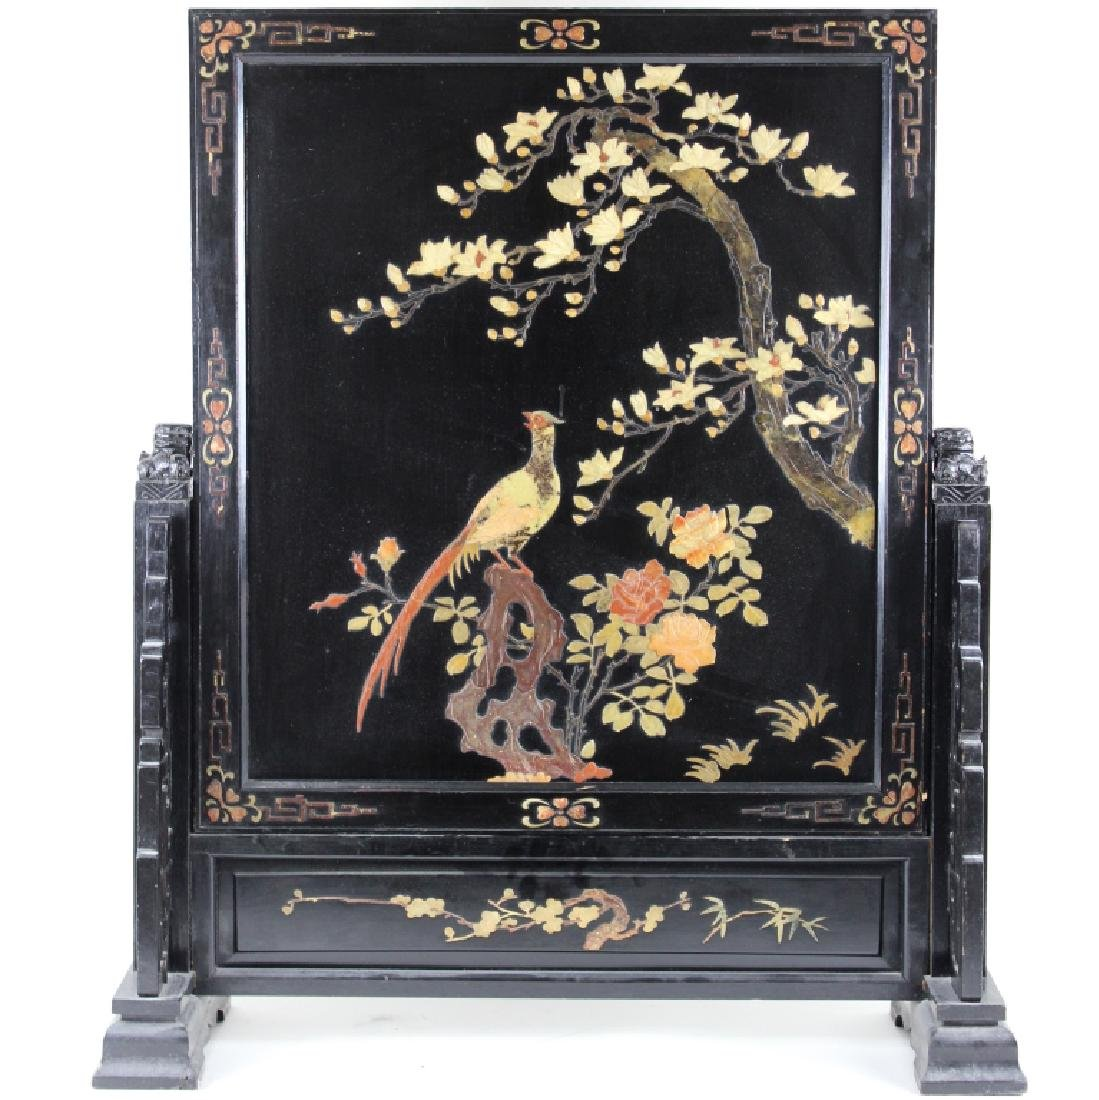 LARGE CHINESE FIRE SCREEN PLAQUE